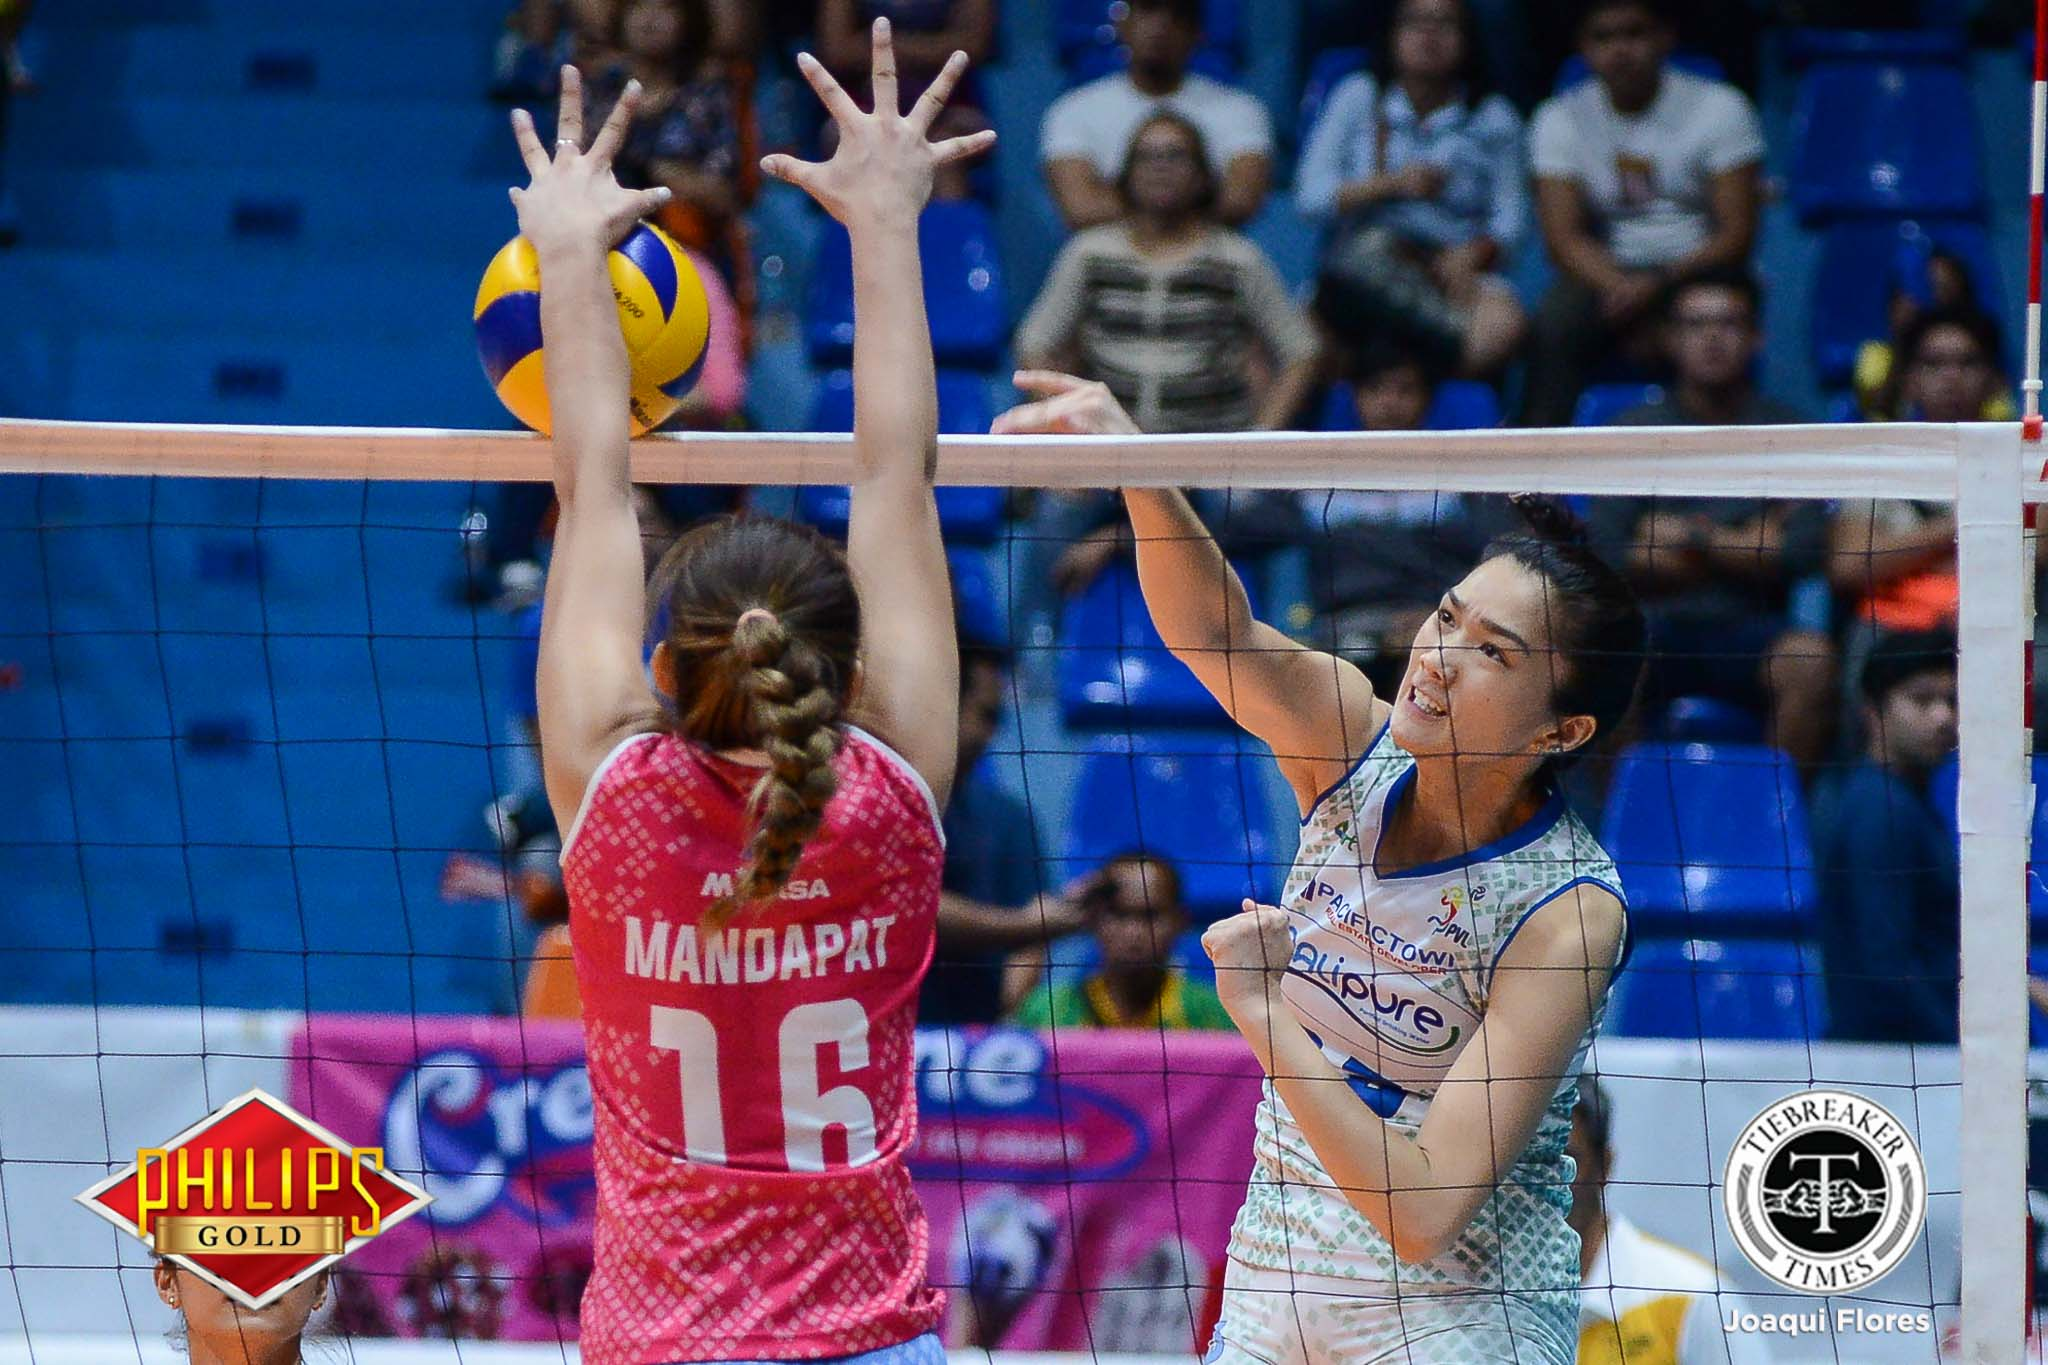 Philippine Sports News - Tiebreaker Times Bali Pure sets up Finals rematch against Pocari Sweat News PVL Volleyball  Roger Gorayeb Pau Soriano Oliver Almadro Lizlee Ann Gata-Pantone Jerrili Malabanan Jasmin Urdas Grethcel Soltones Creamline Cool Smashers Bali Pure Purest Water Defenders Aiko Urdas 2017 PVL Women's Open Conference 2017 PVL Season